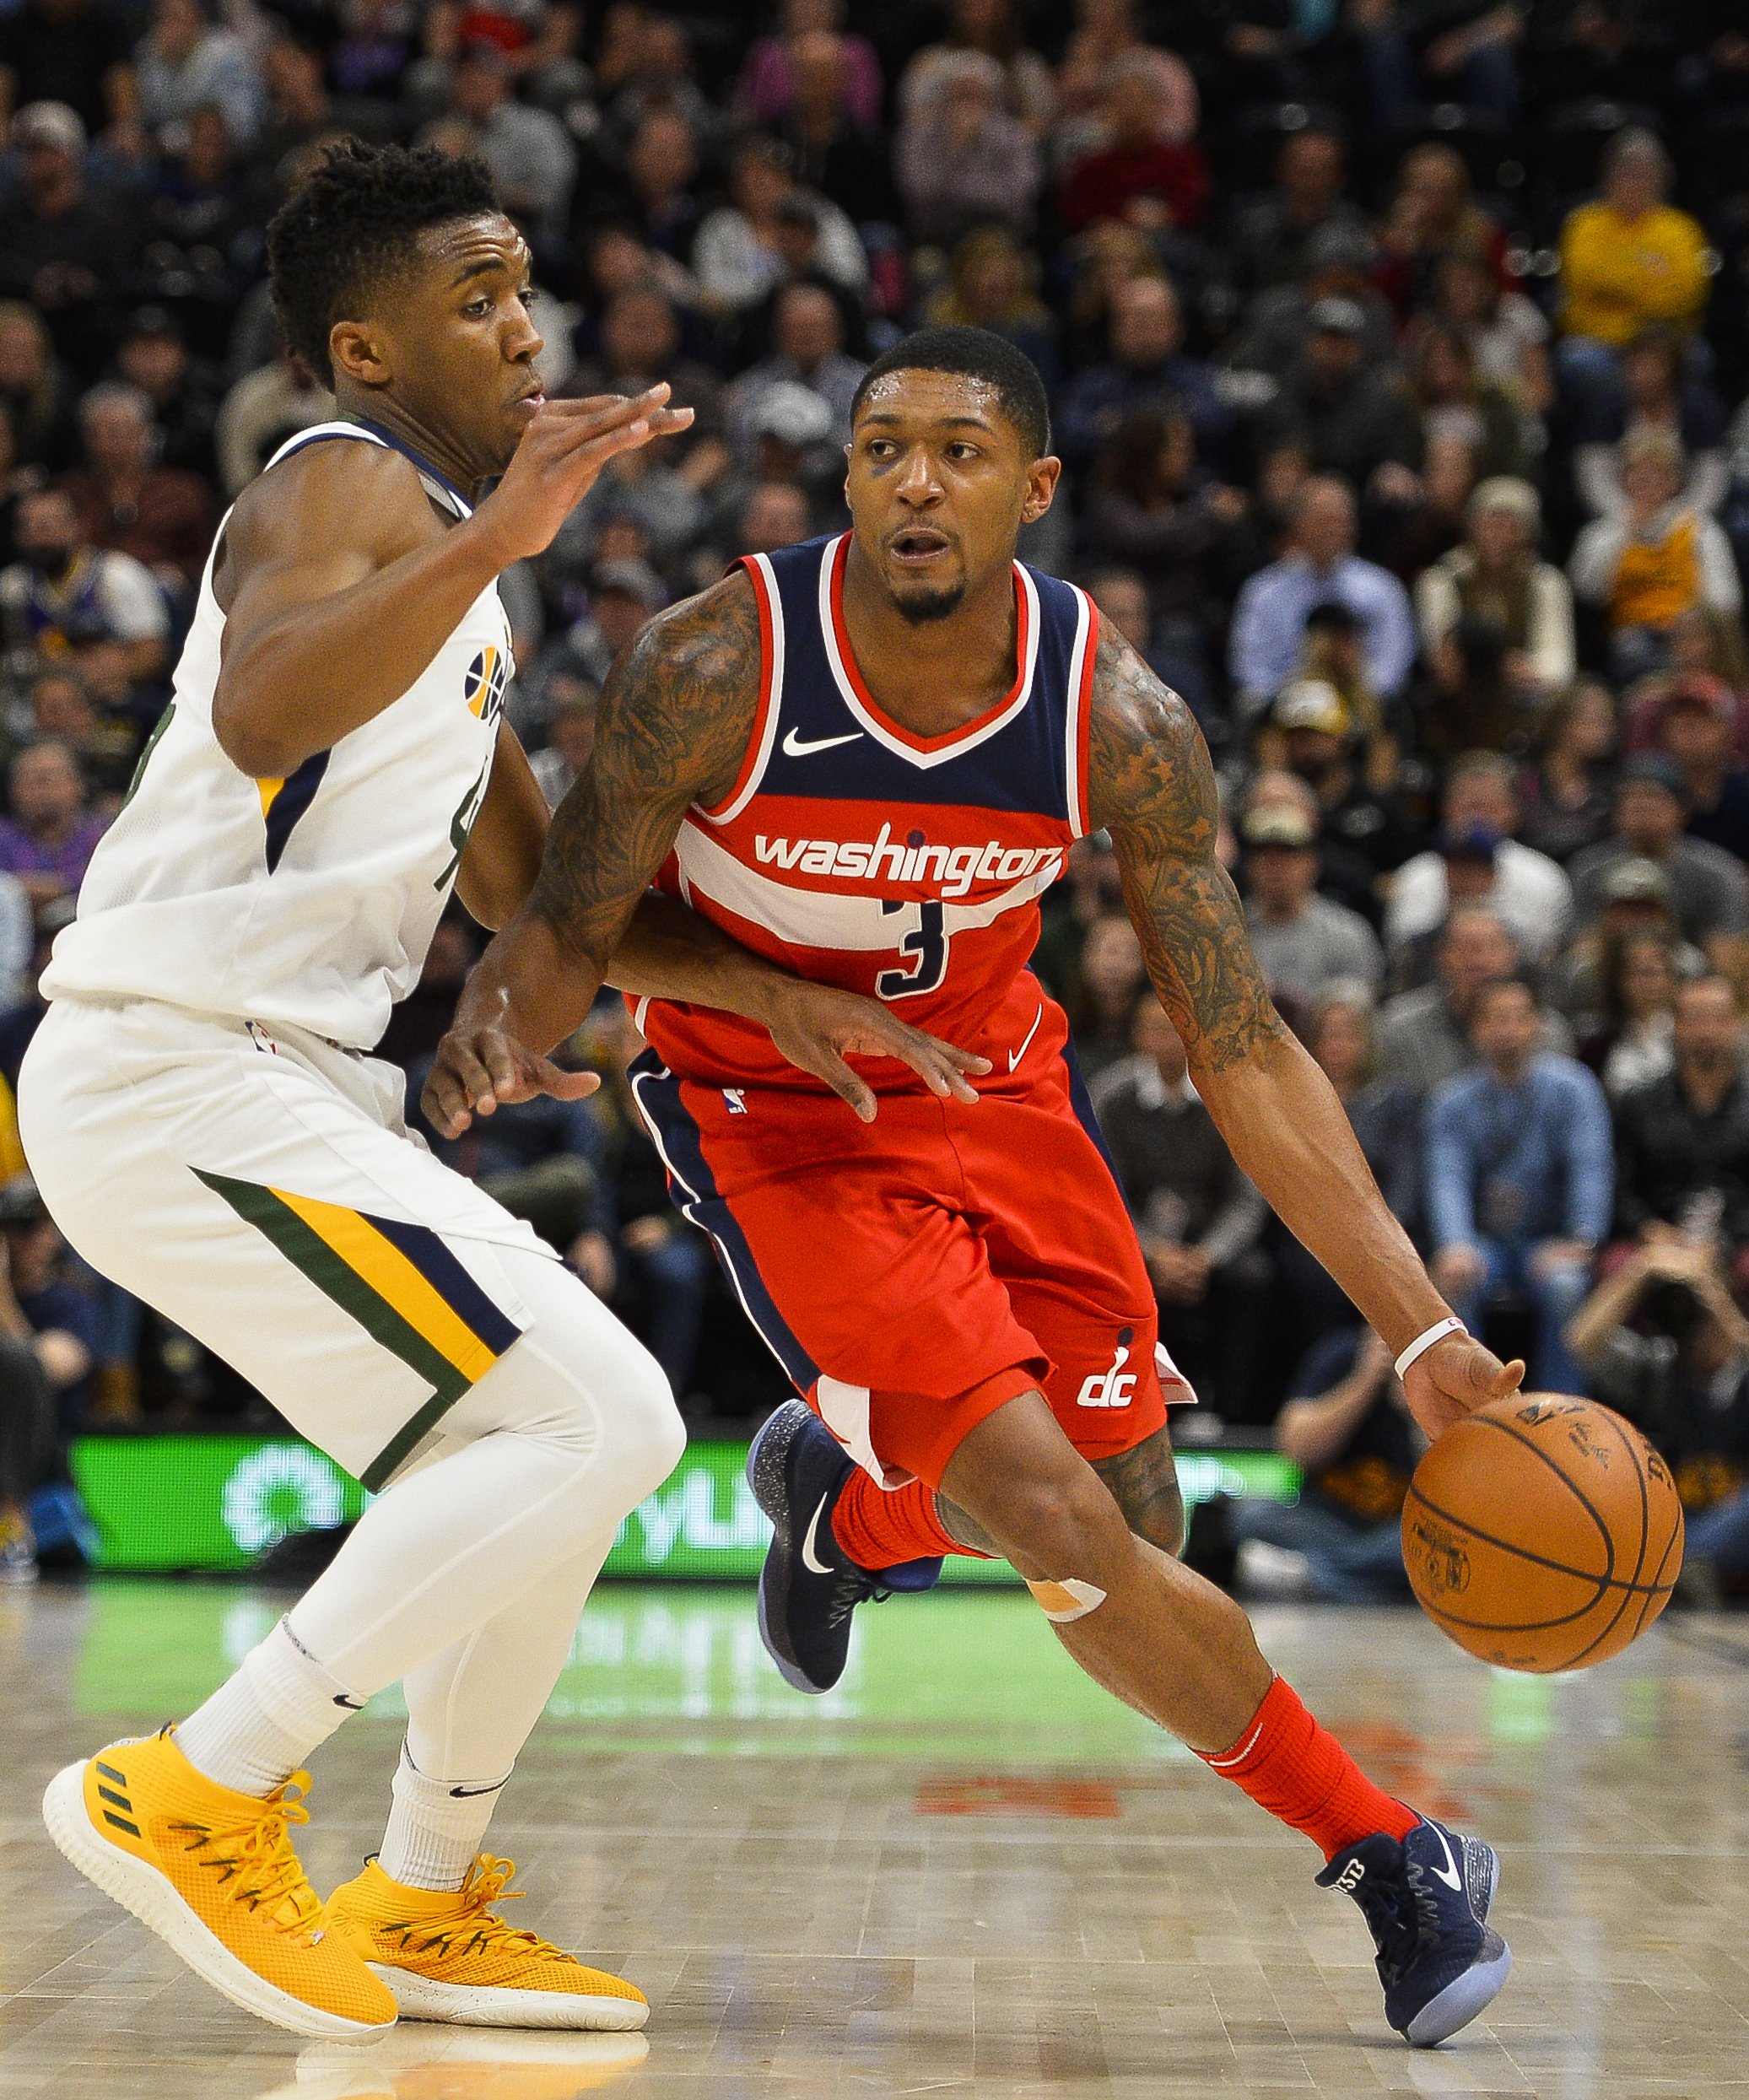 Utah Jazz guard Donovan Mitchell, left, attempts to guard Washington Wizards guard Bradley Beal, right, in the first half of an NBA basketball game Monday, Dec. 4, 2017, in Salt Lake City. (AP Photo/Alex Goodlett)